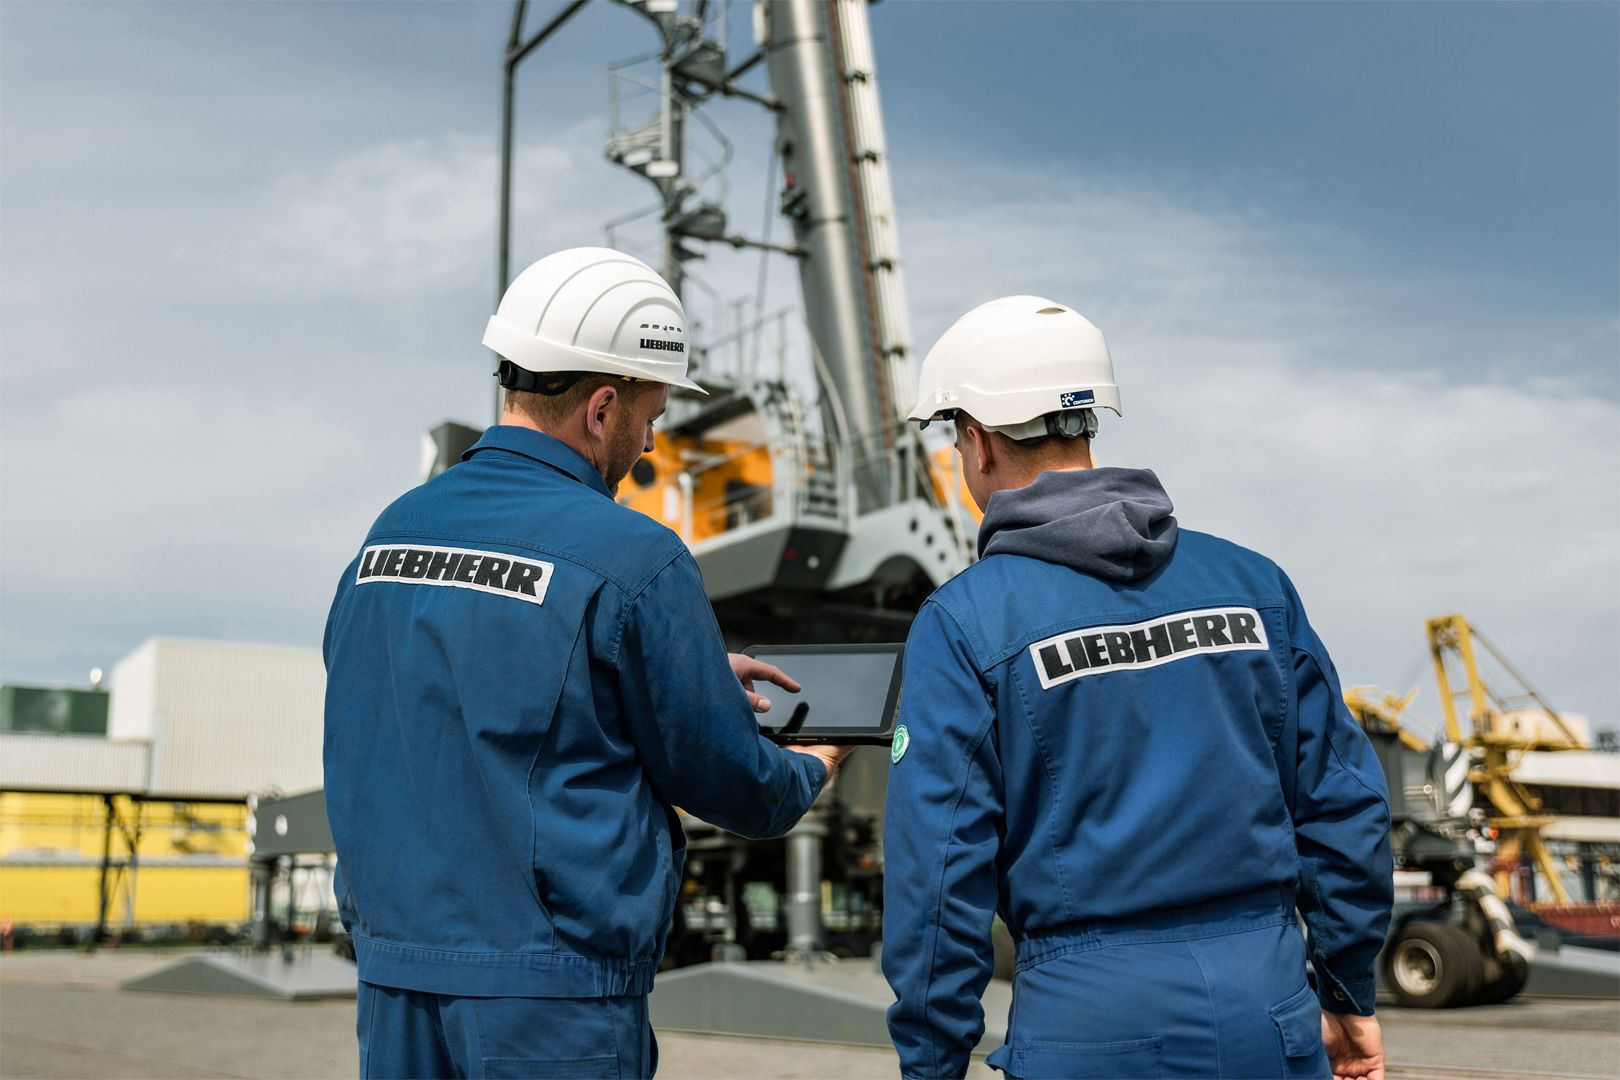 Liebherr employees, who are on a job site, examine data on a tablet using XpertAssist.